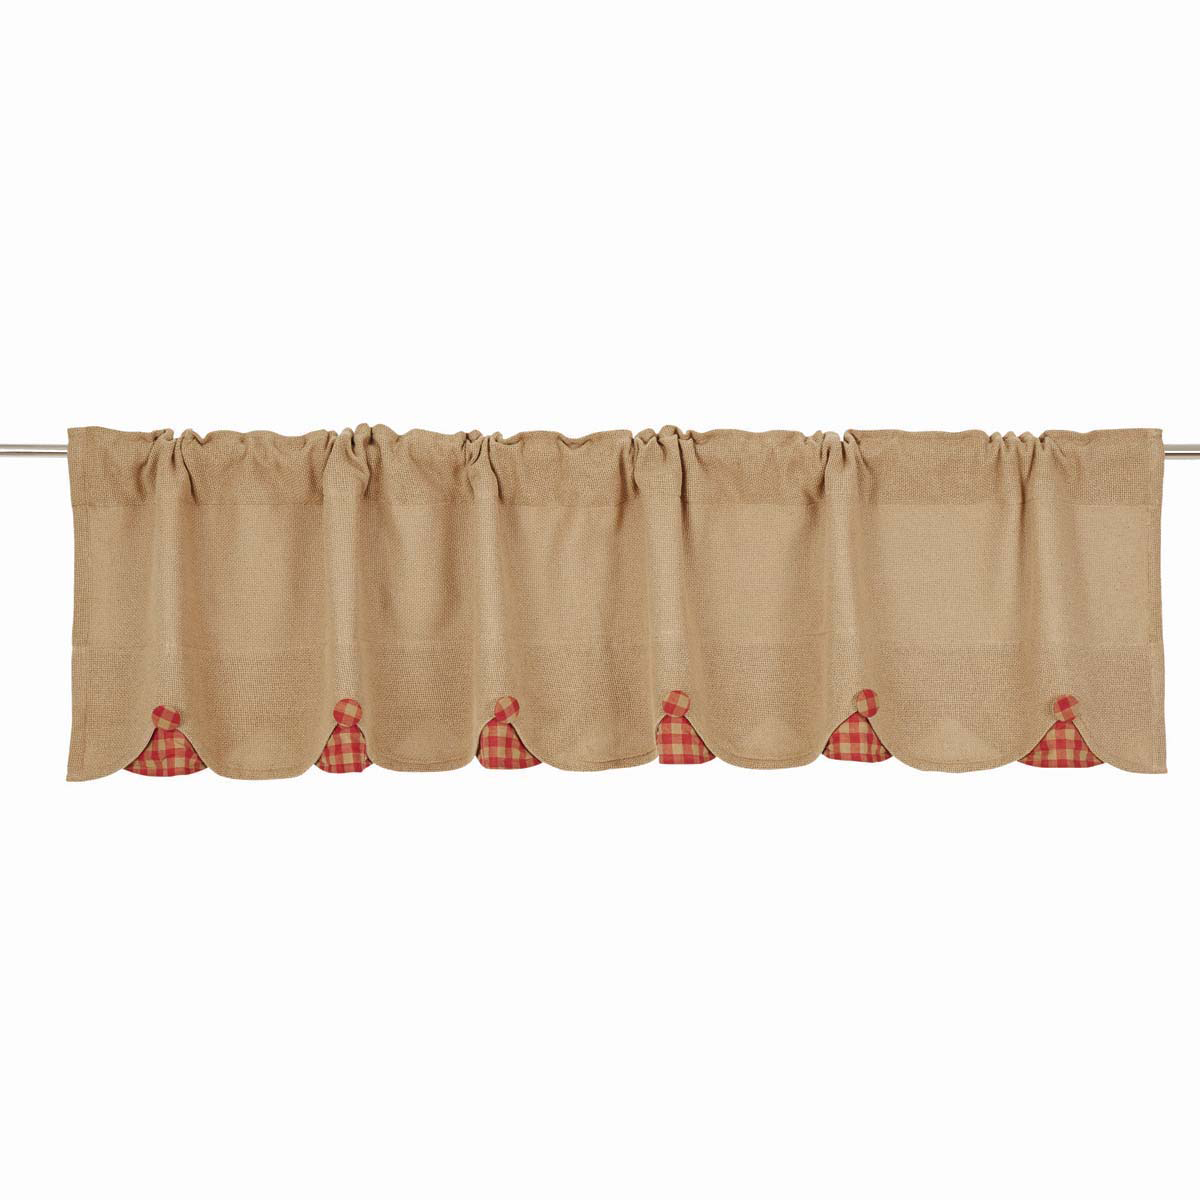 BURLAP NATURAL Valance w/Red Check - 16x72 - Country Farmhouse - VHC Brands